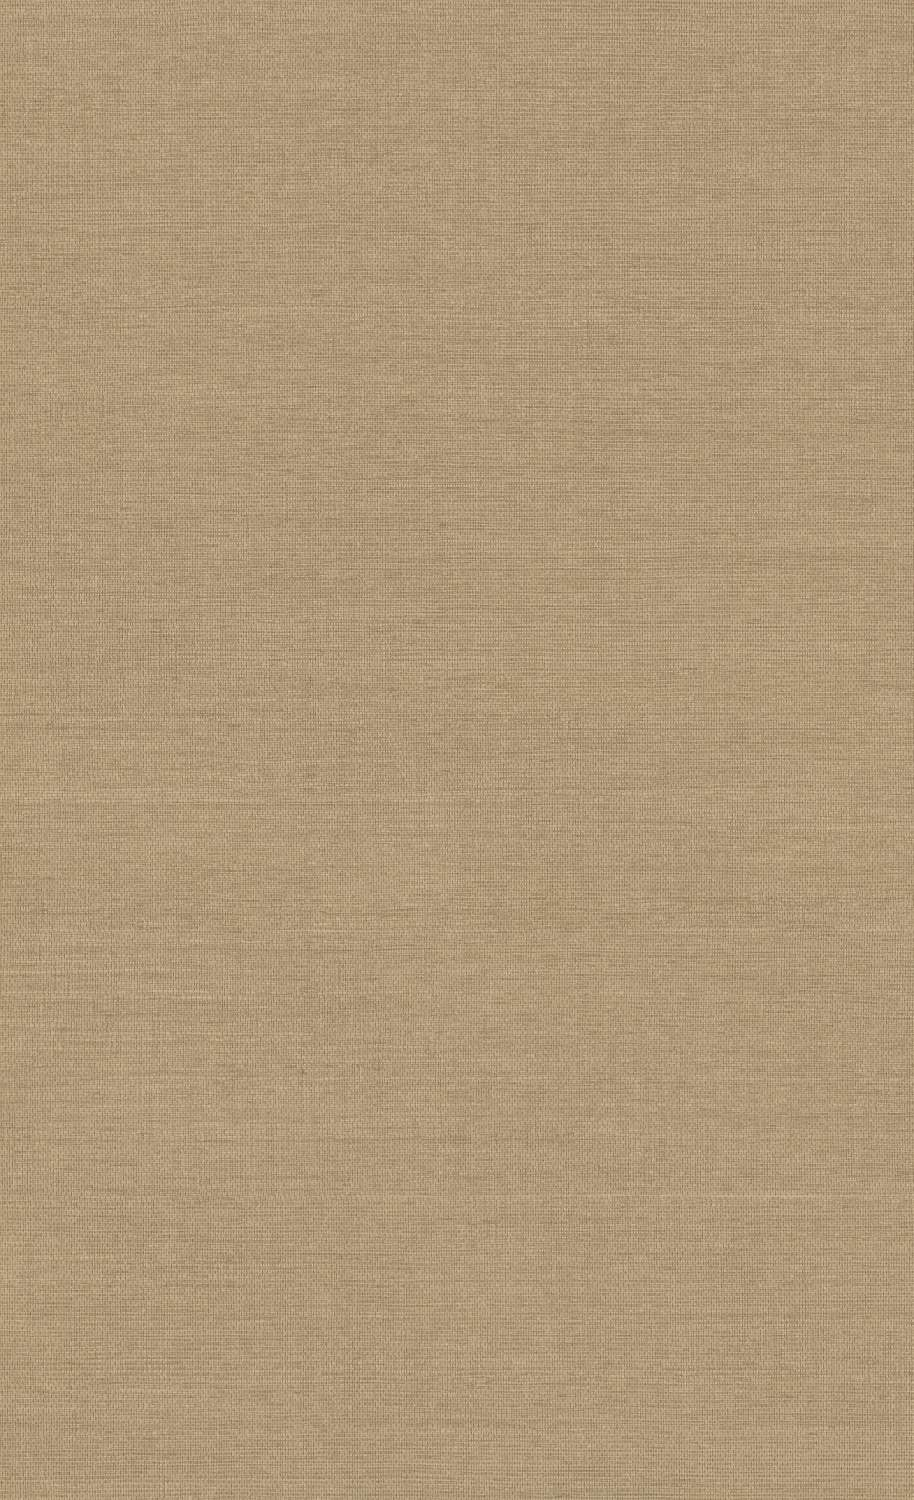 Brown Minimalist Weave C7253 | Commercial & Hospitality Wallpaper